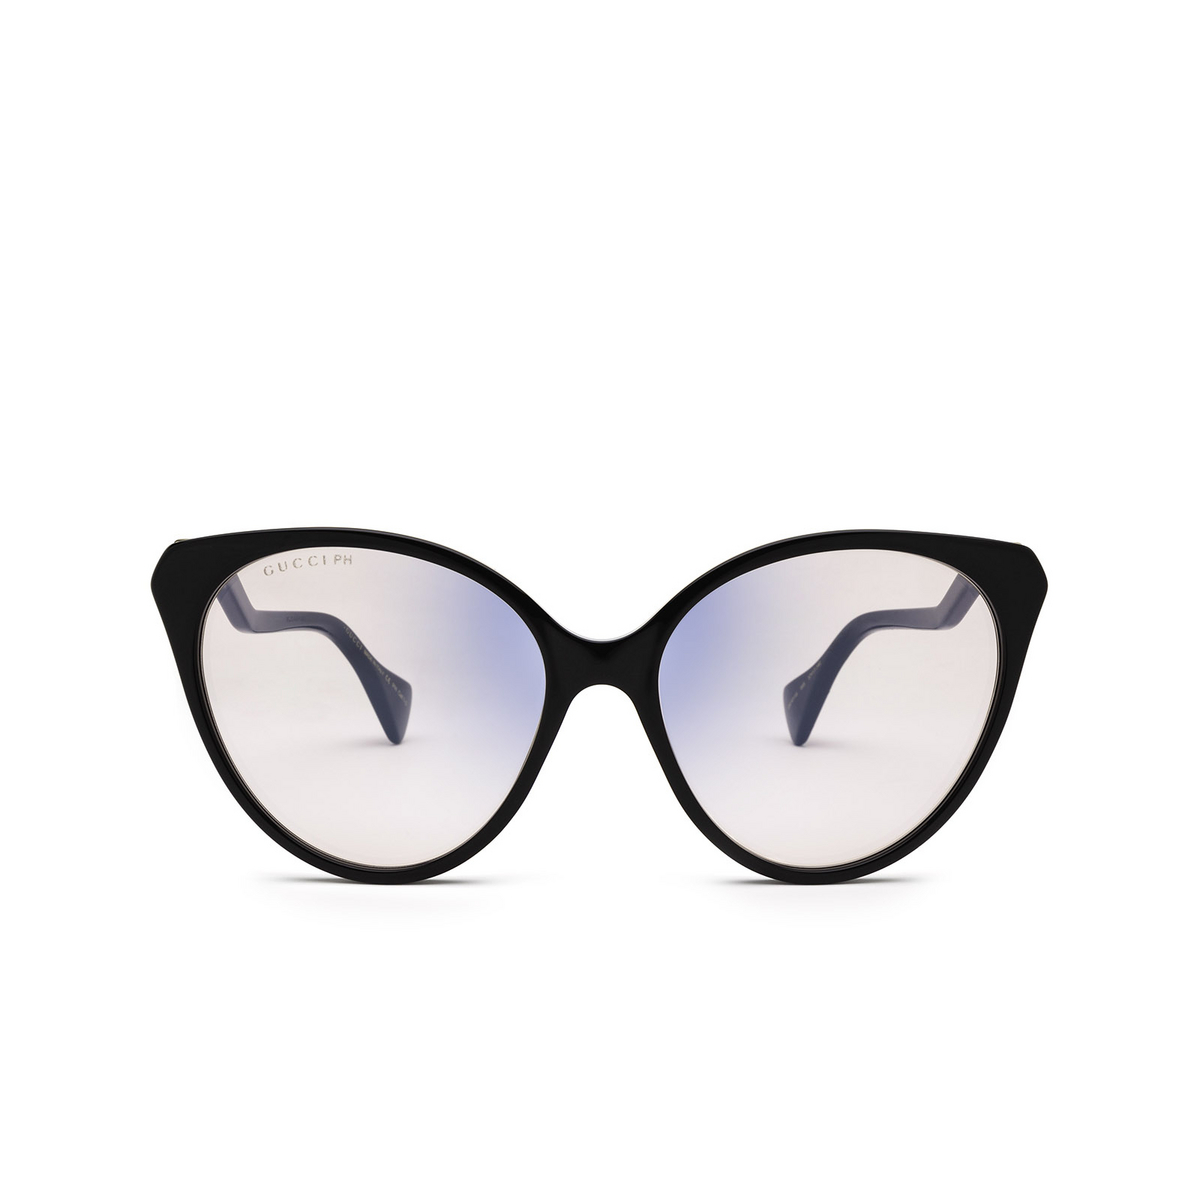 Gucci® Cat-eye Sunglasses: GG1011S color Black 005 - front view.